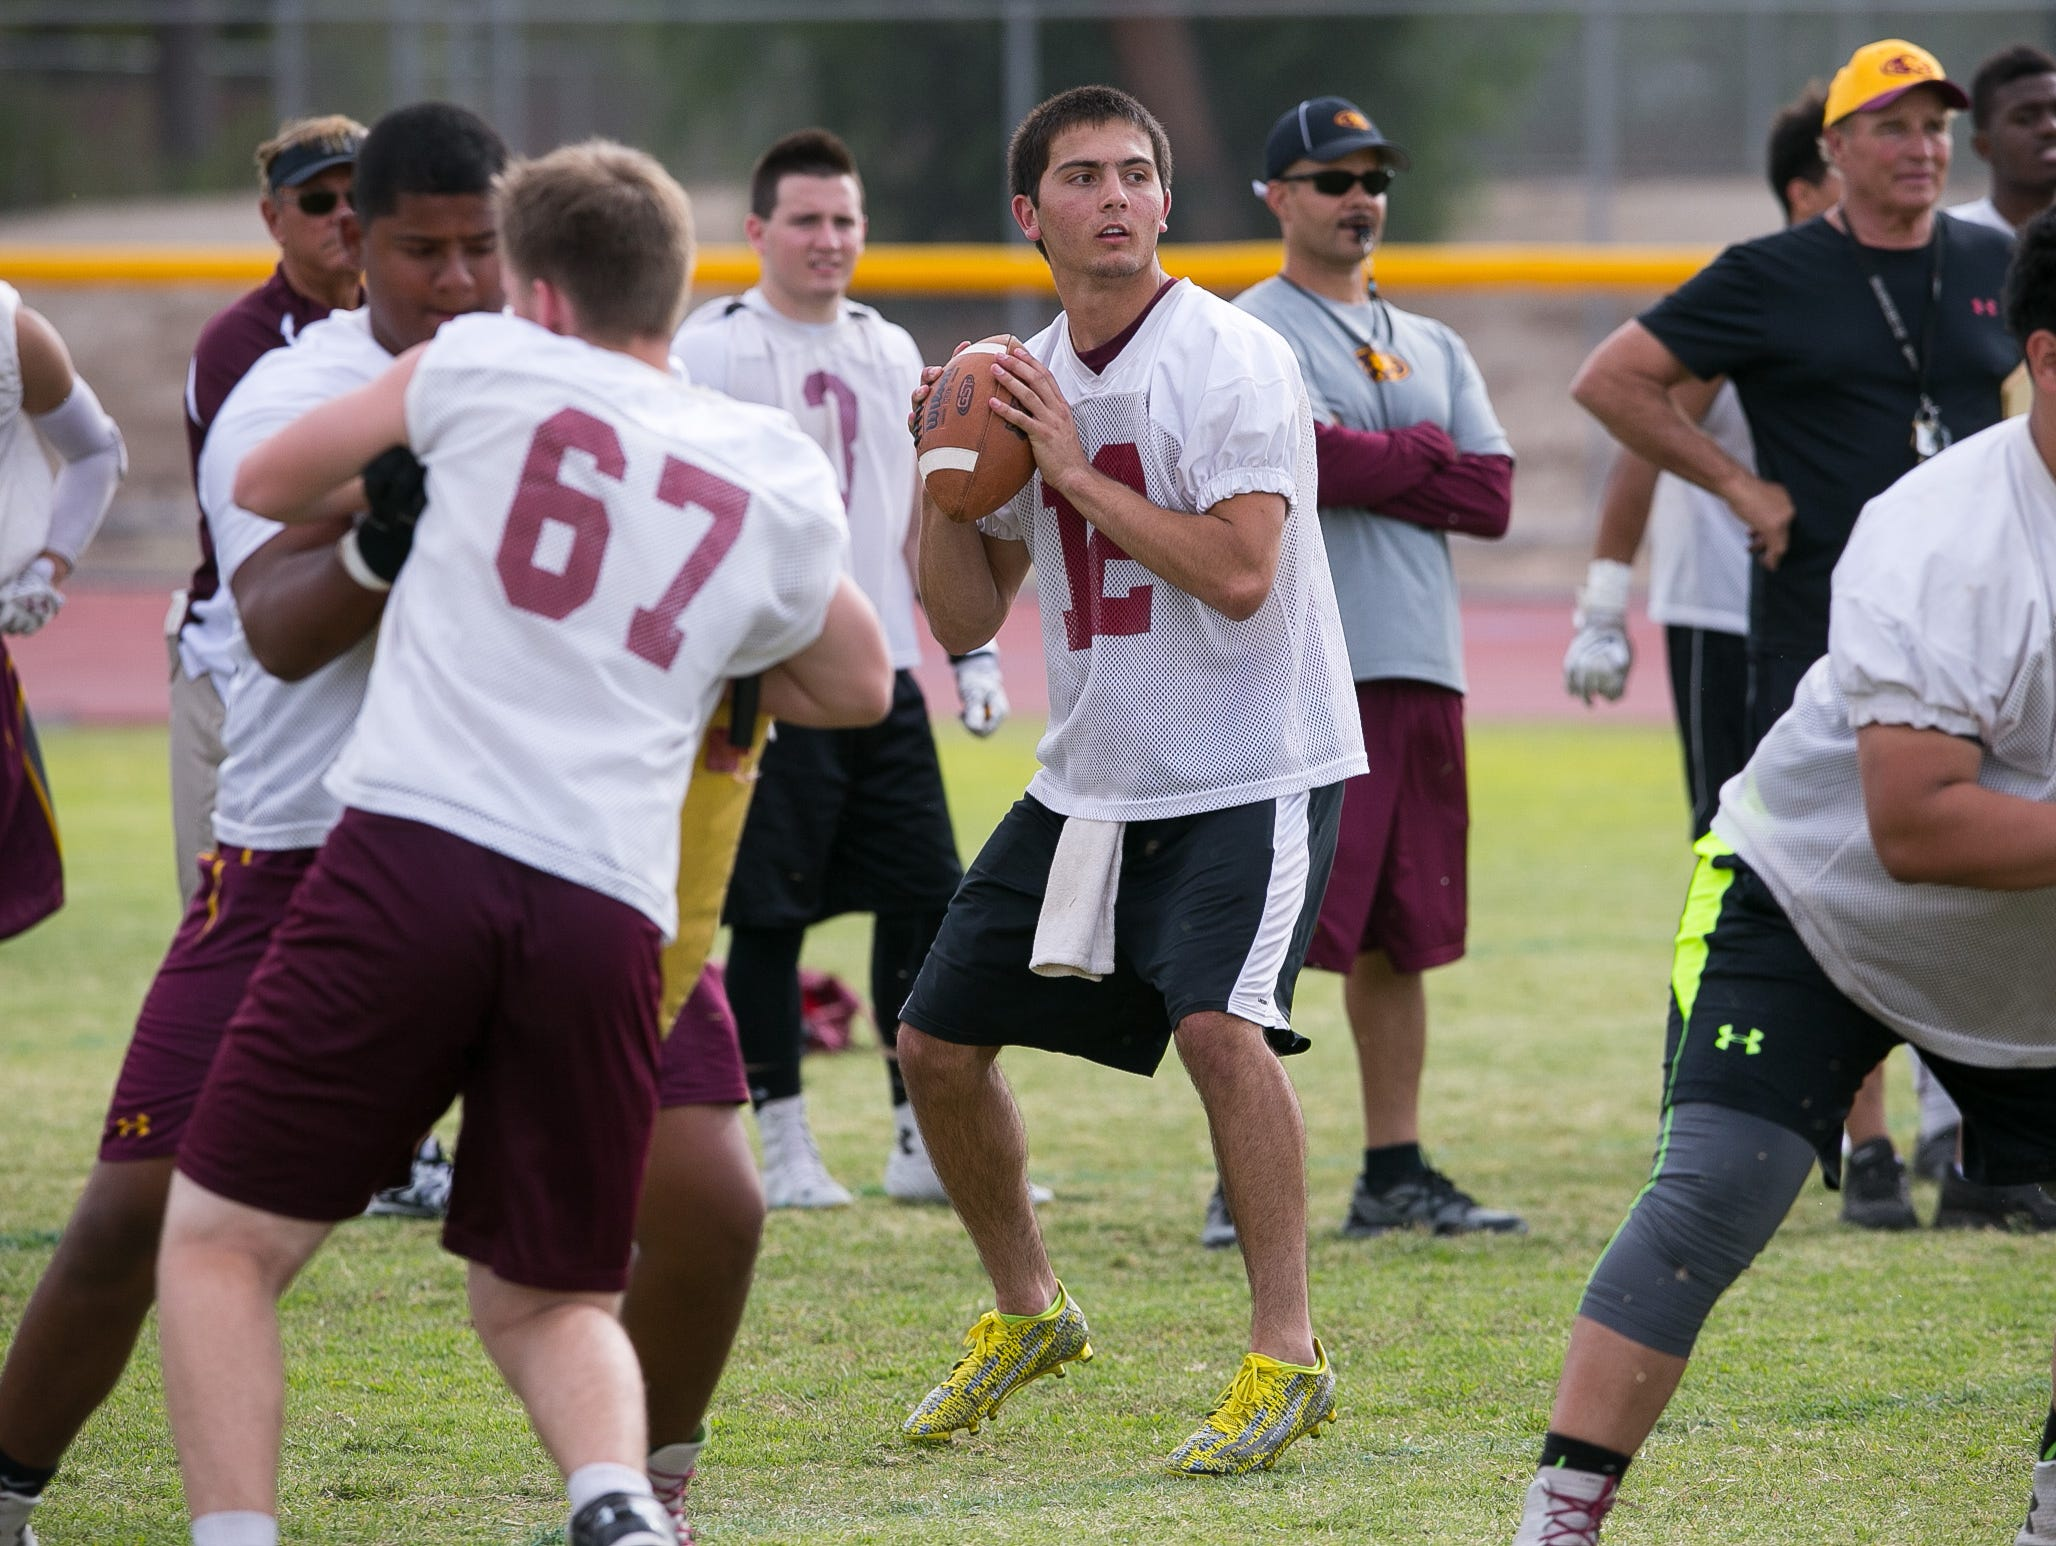 Phoenix Mountain Pointe's game against Phoenix Desert Vista on Oct. 1 will be featured in Cox7's blockbuster Thursday night football lineup.